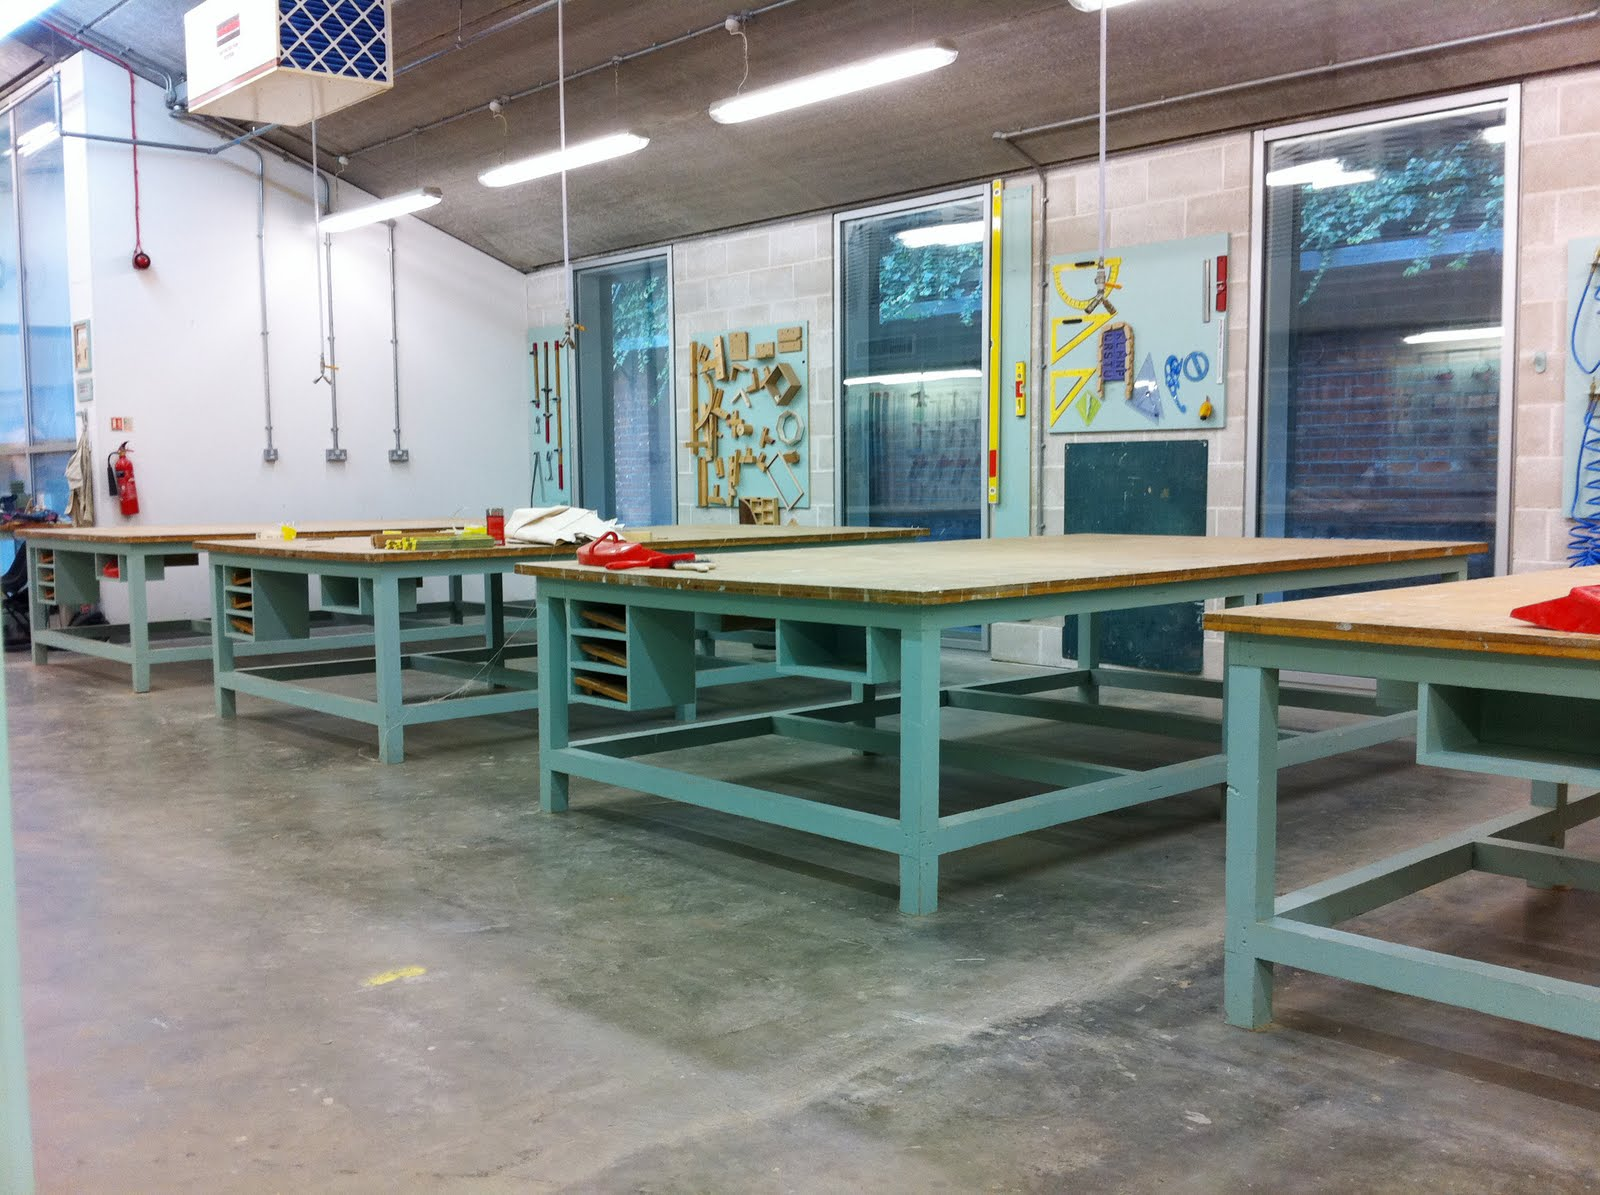 The Large Worktables